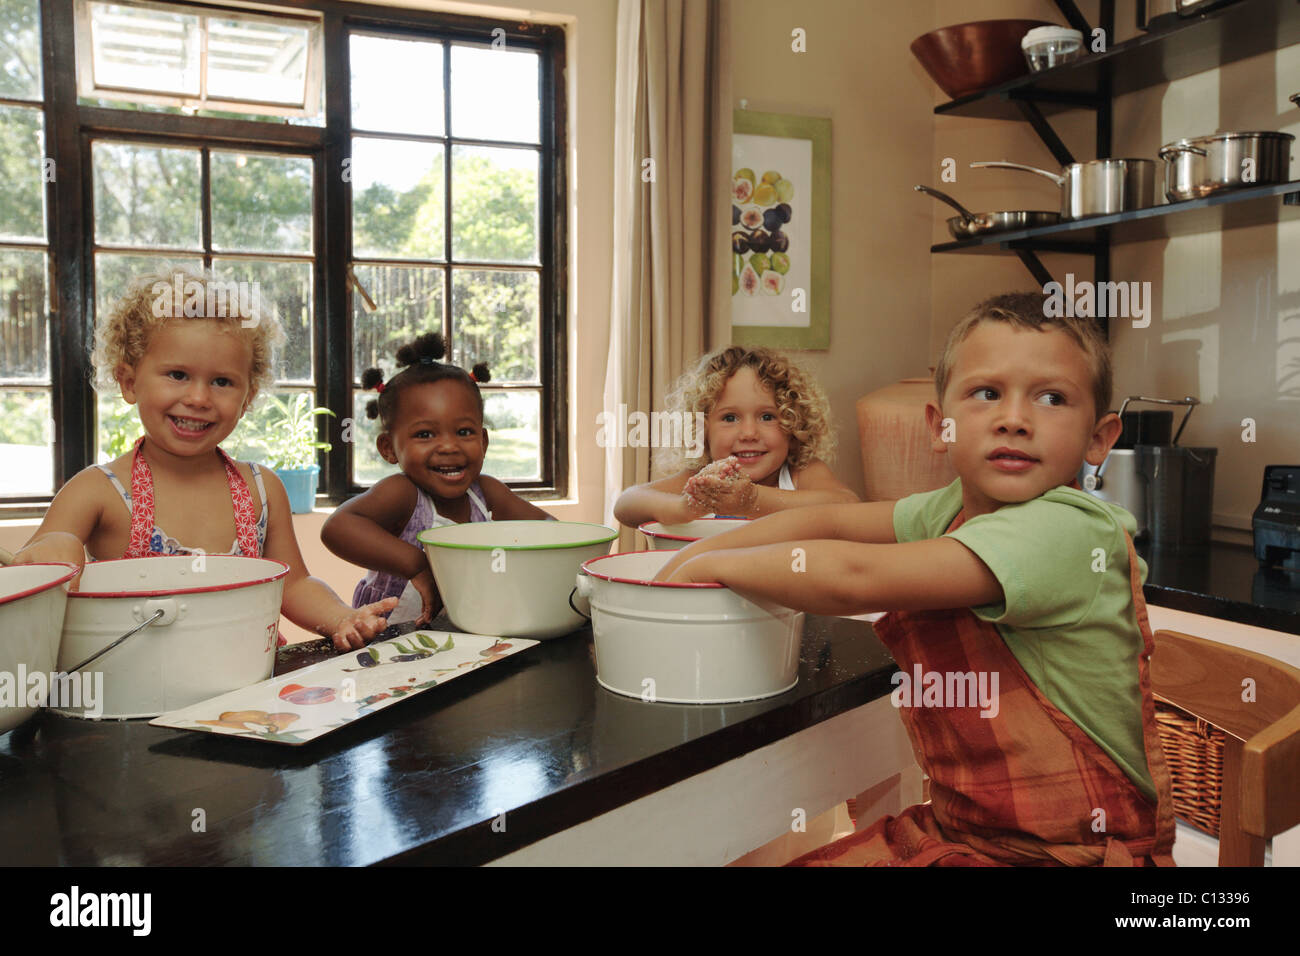 Boys and girls (4-5, 2-3, 18-23 months) making food around table, Cape Town, Western Cape Province, South Africa - Stock Image